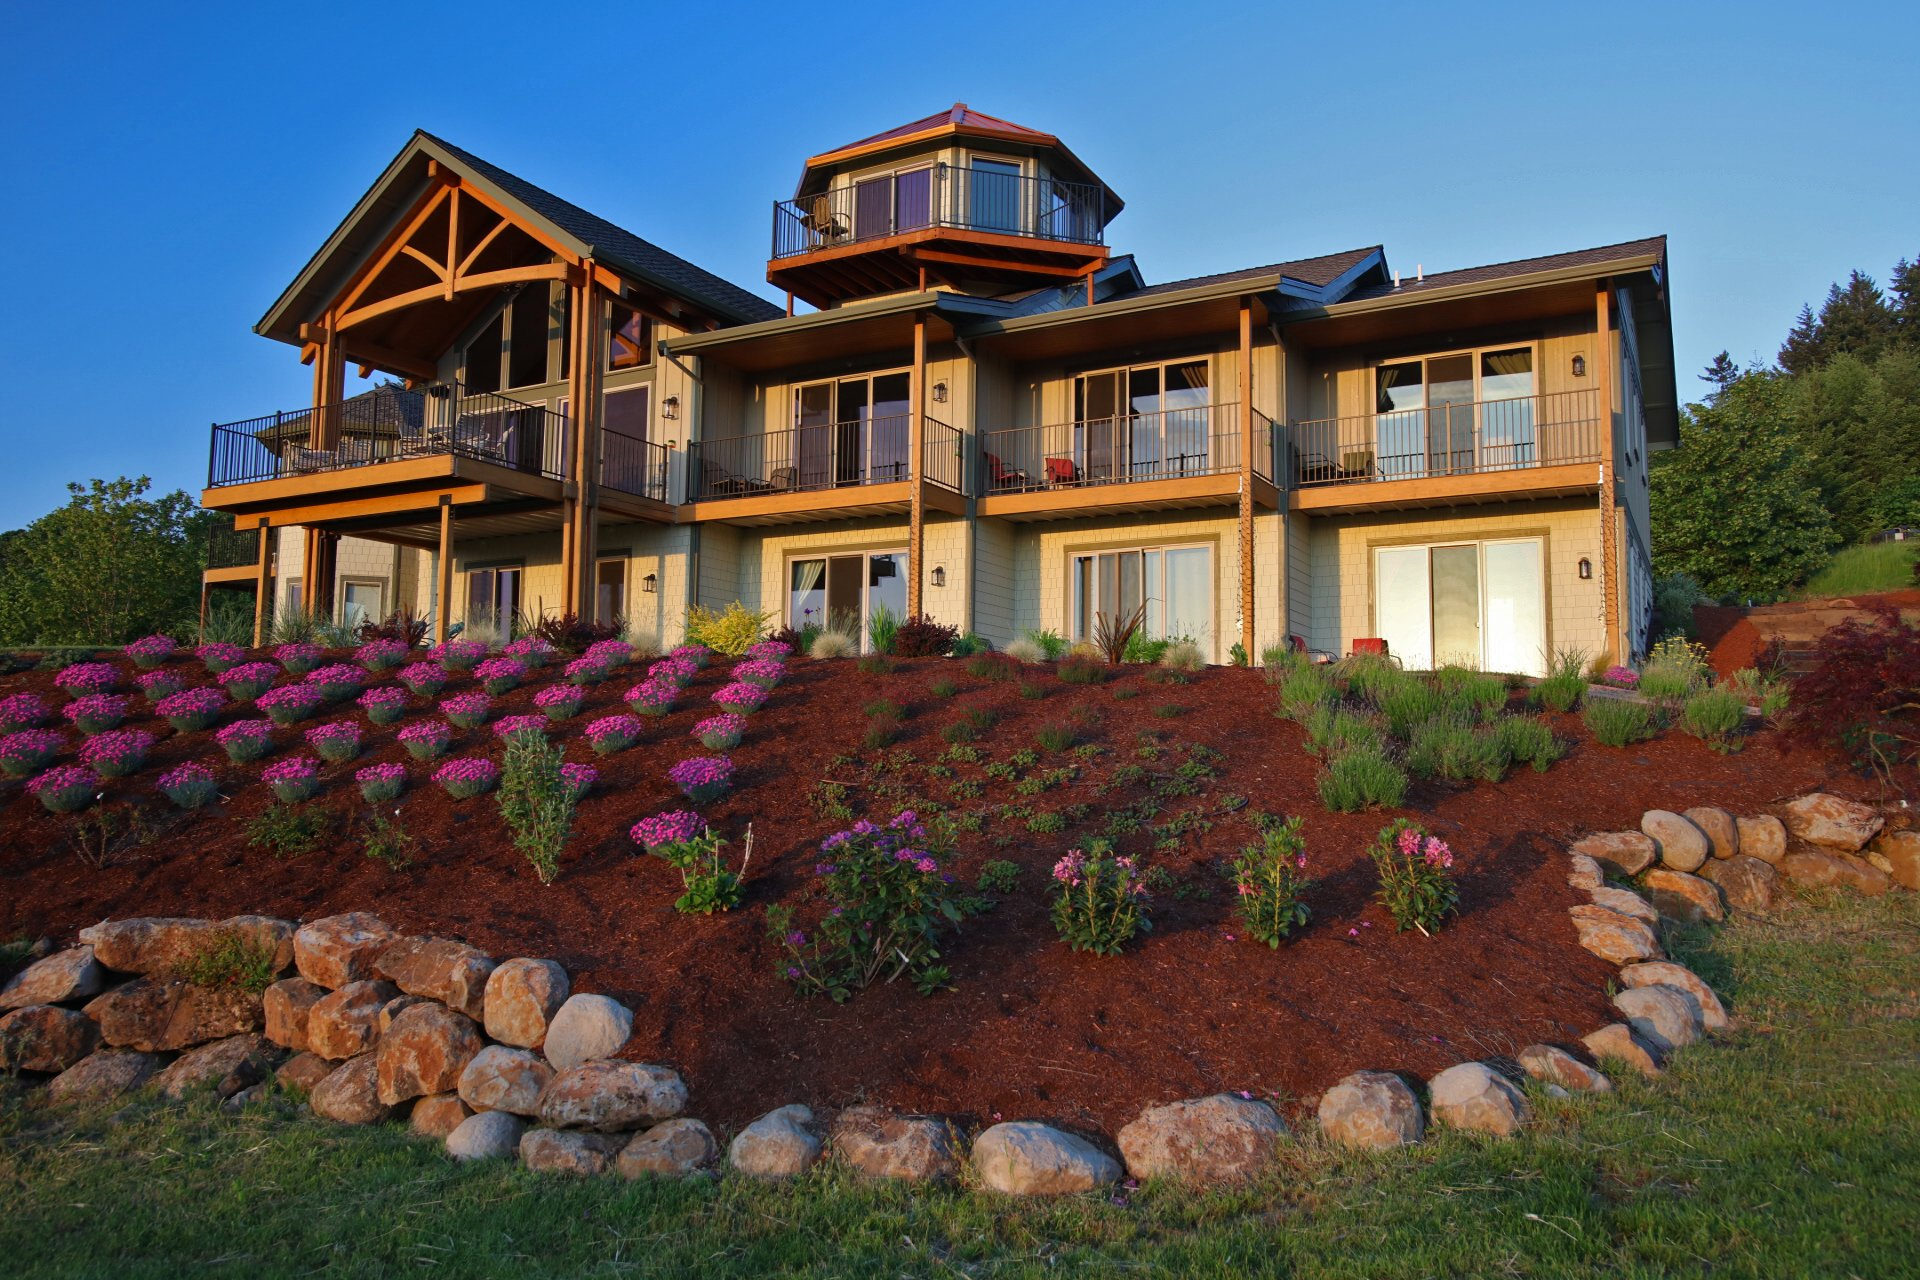 Bella Collina Bed and Breakfast in Amity, Oregon